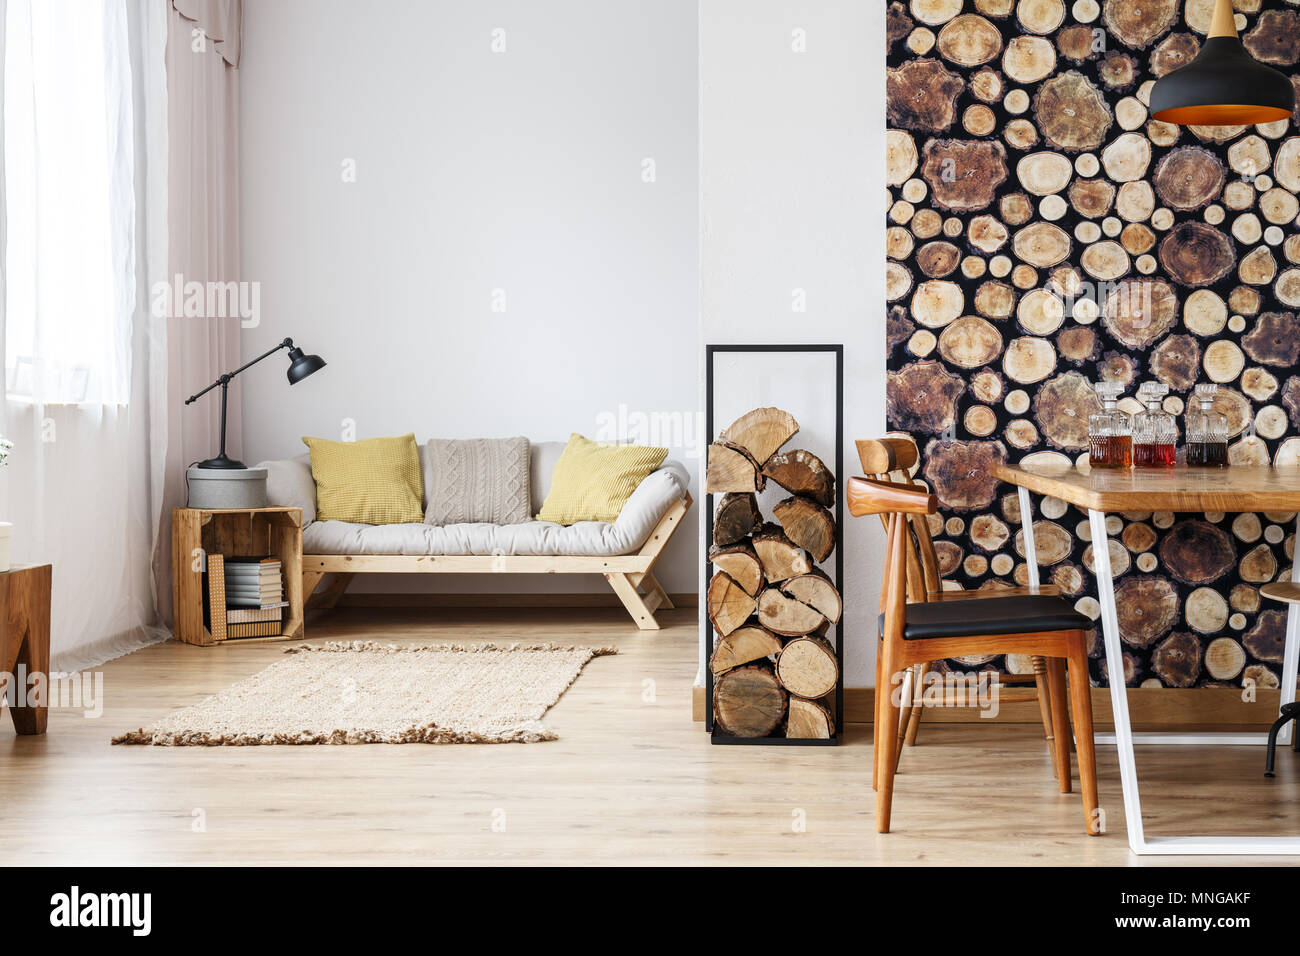 Sofa Open Box Natural Design In Open Plan Studio With Log Holder Wood Wallpaper